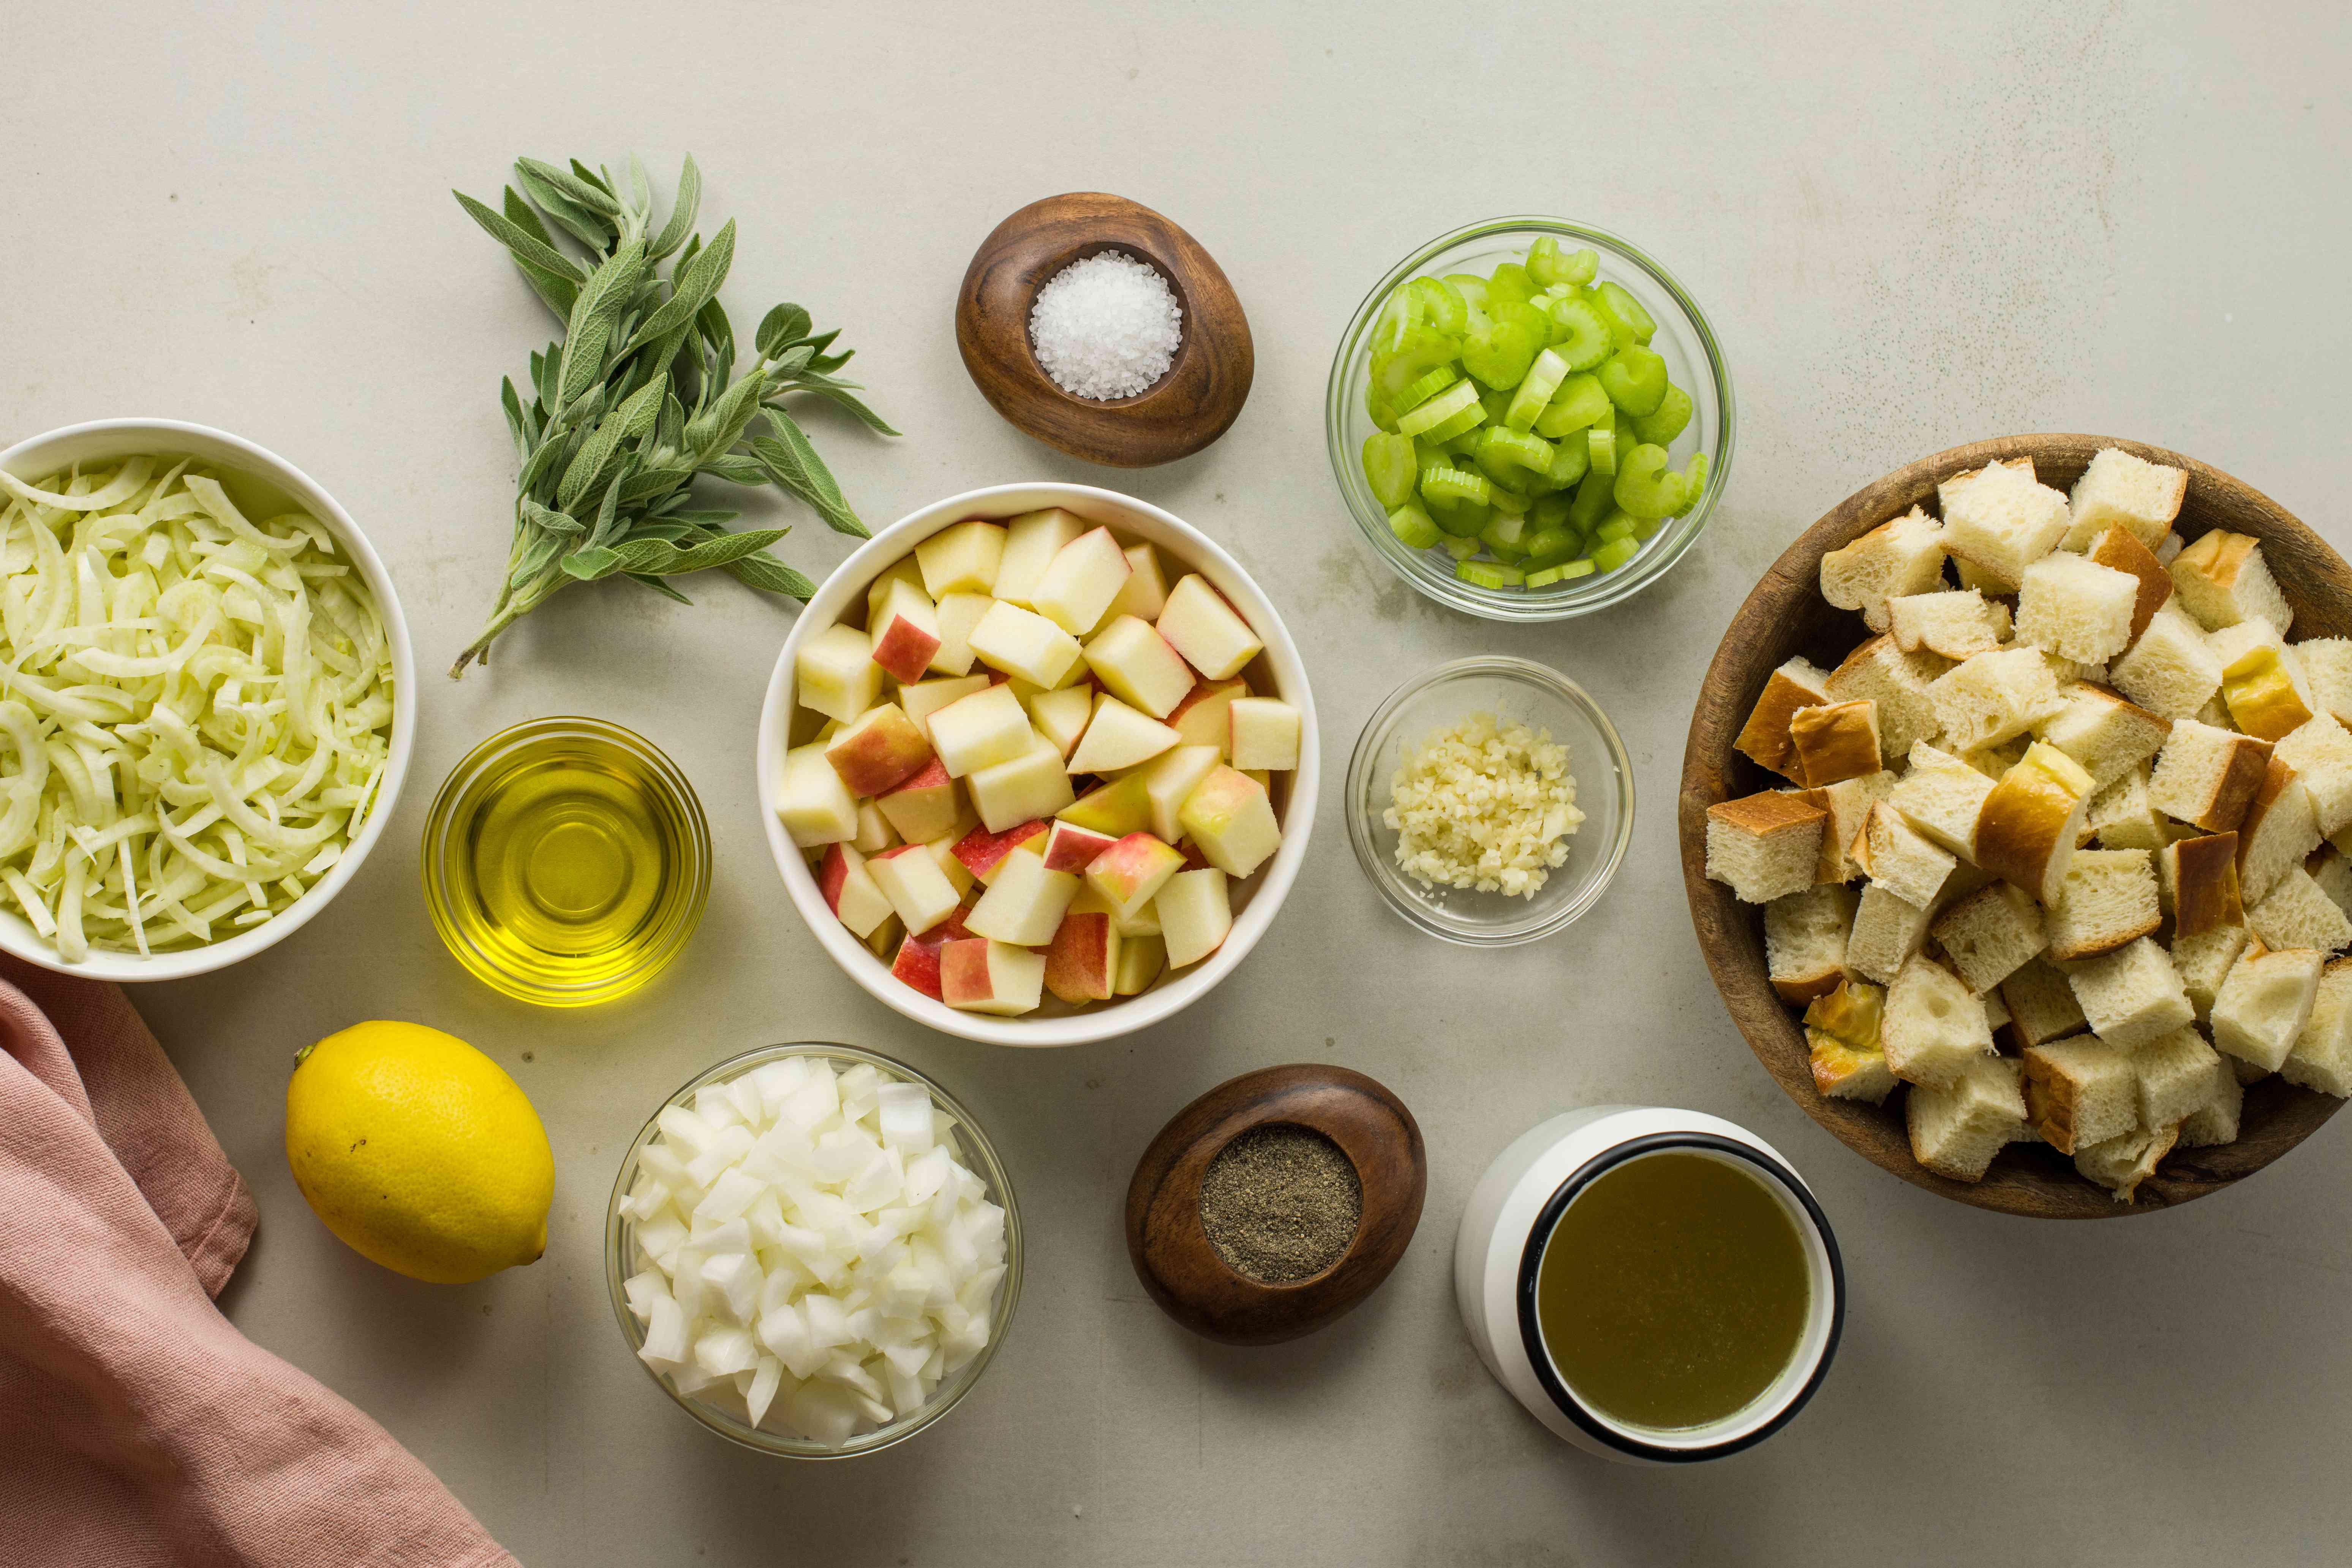 Ingredients for apple and fennel challah stuffing